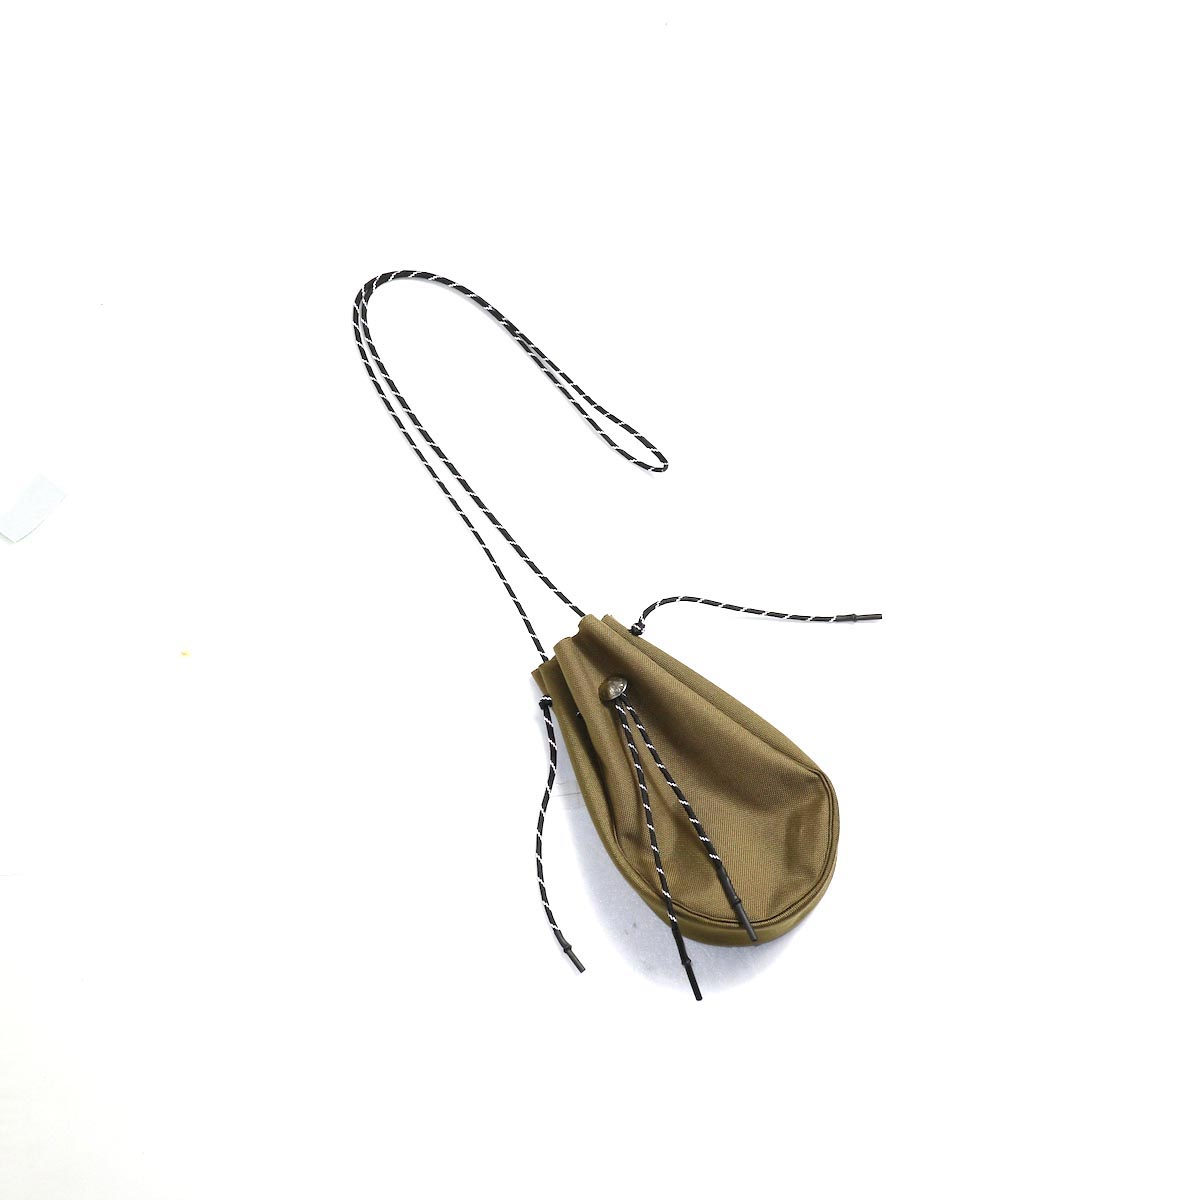 吉岡衣料店 / drawstring bag -S-. w/concho. (Coyote)